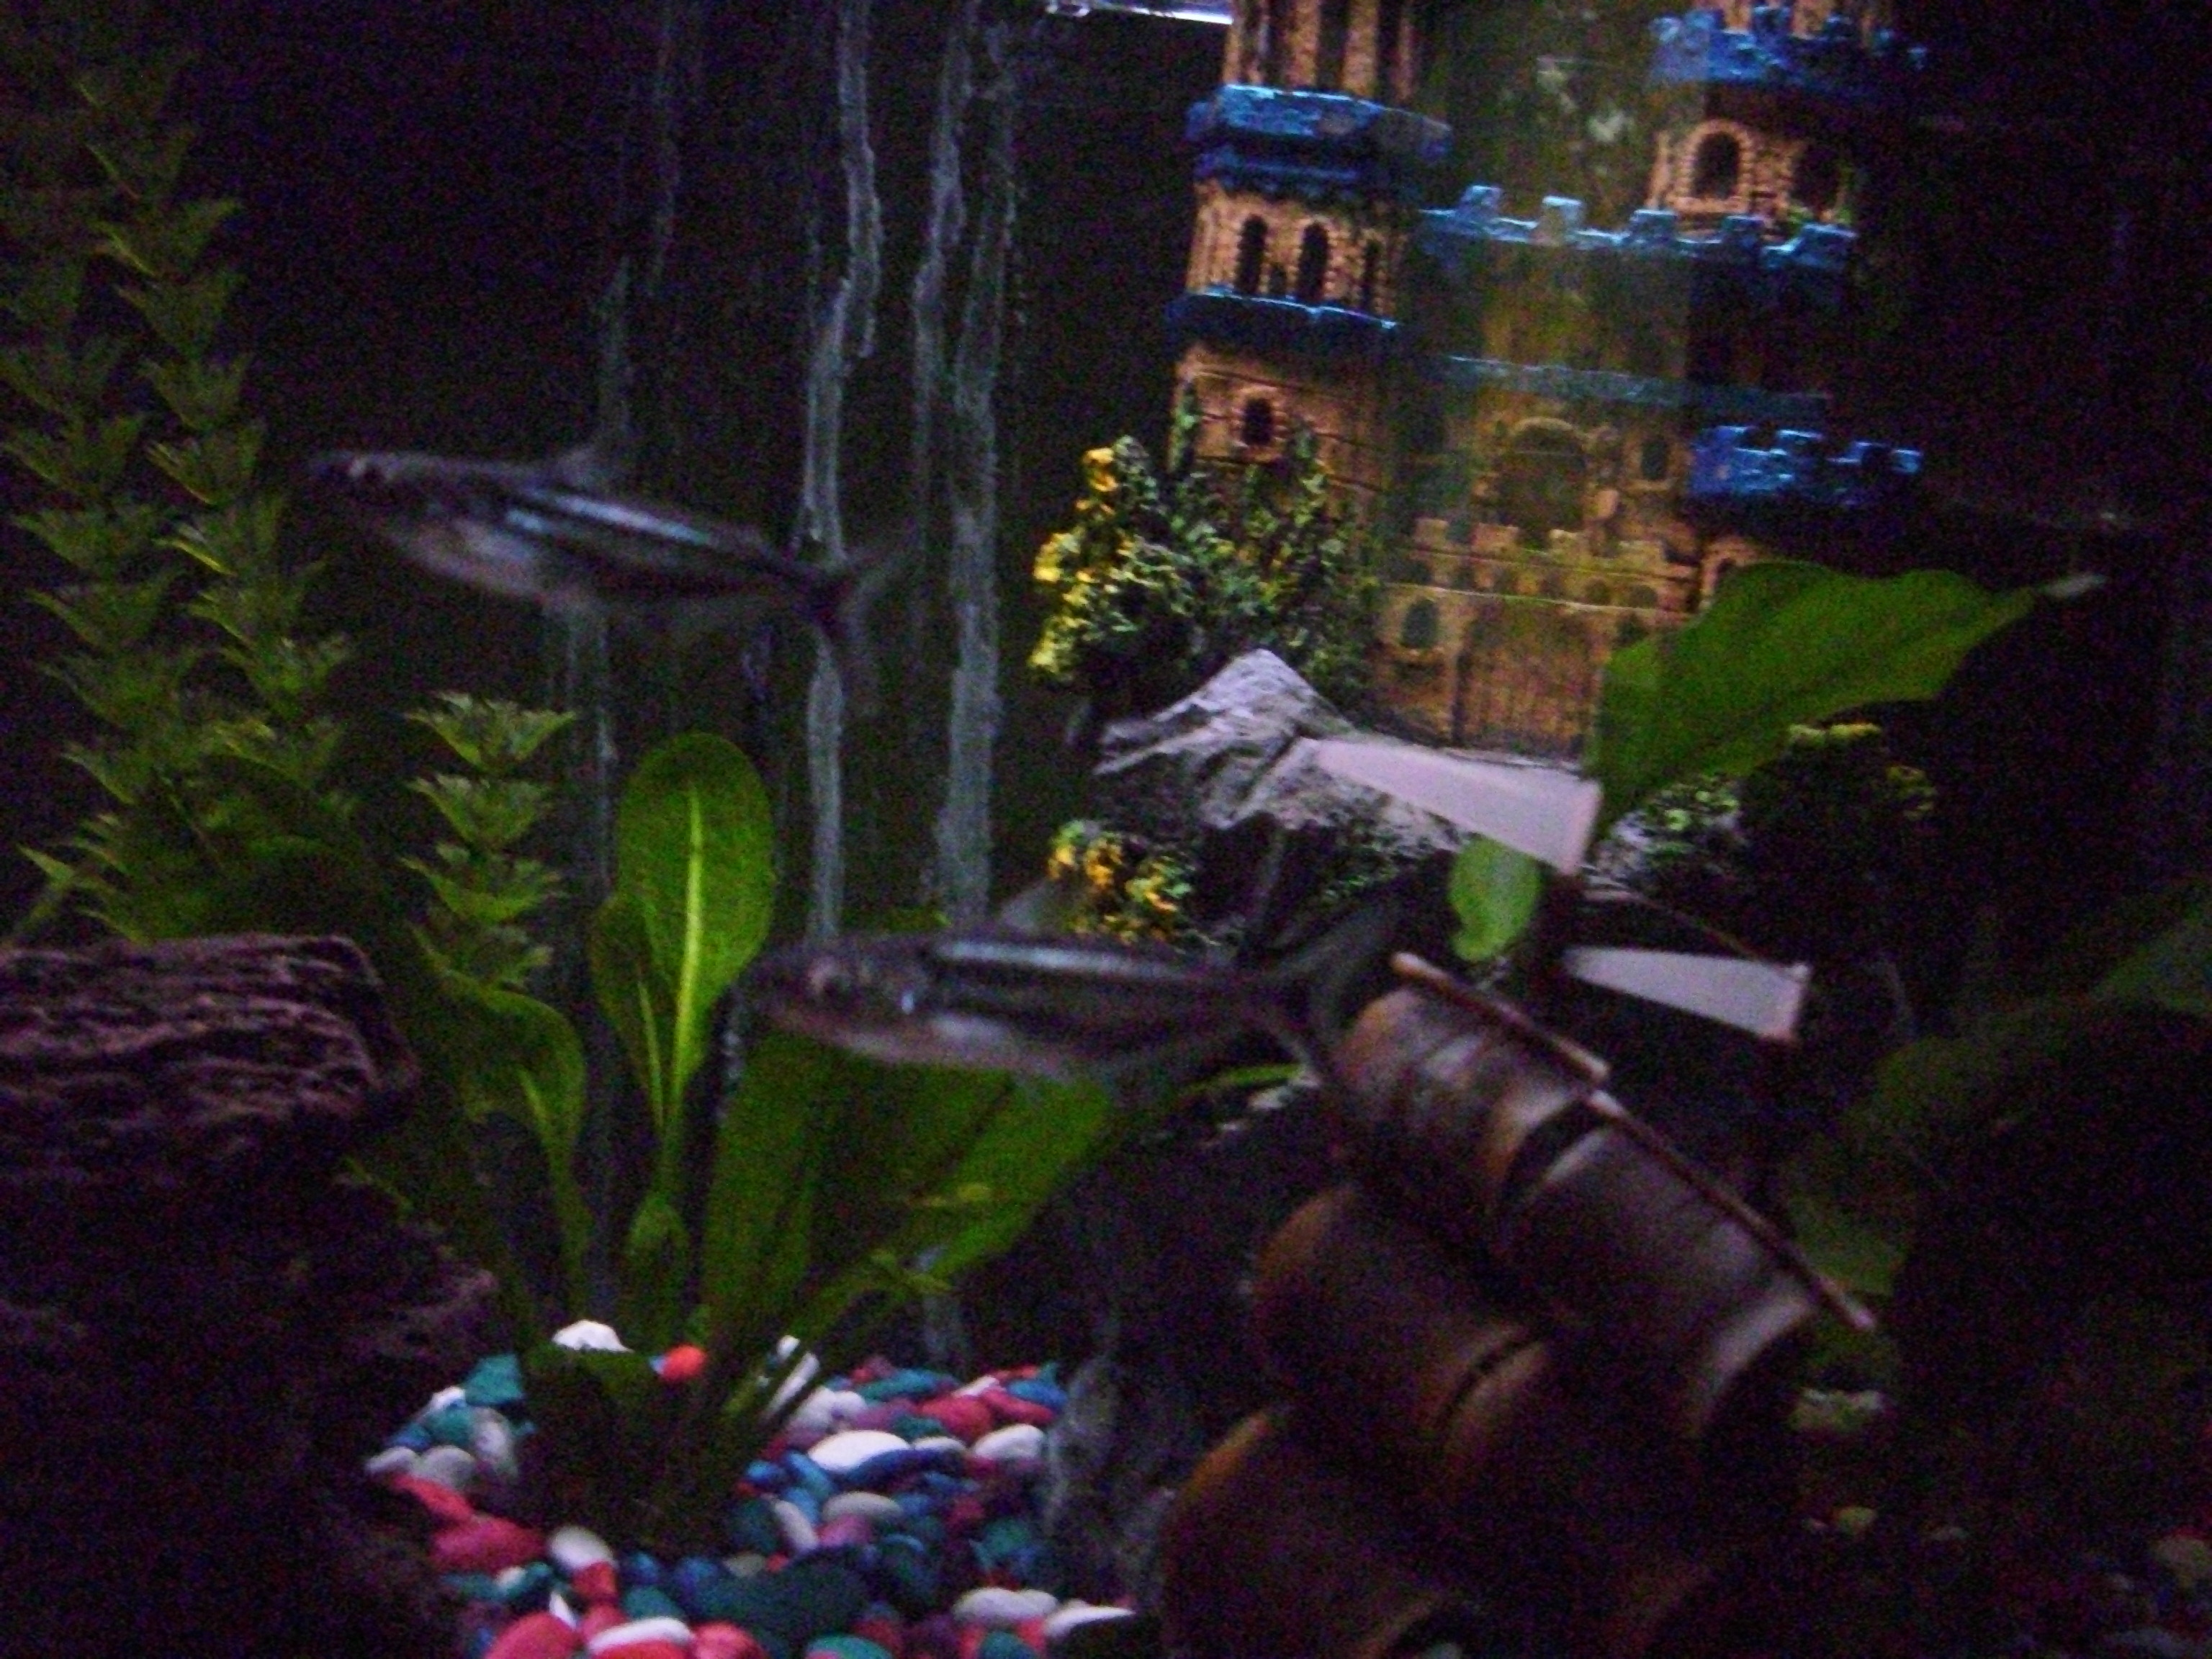 Freshwater aquarium fish that look like sharks - Due To Variations Within Species Your Item May Not Look Identical To The Image Provided